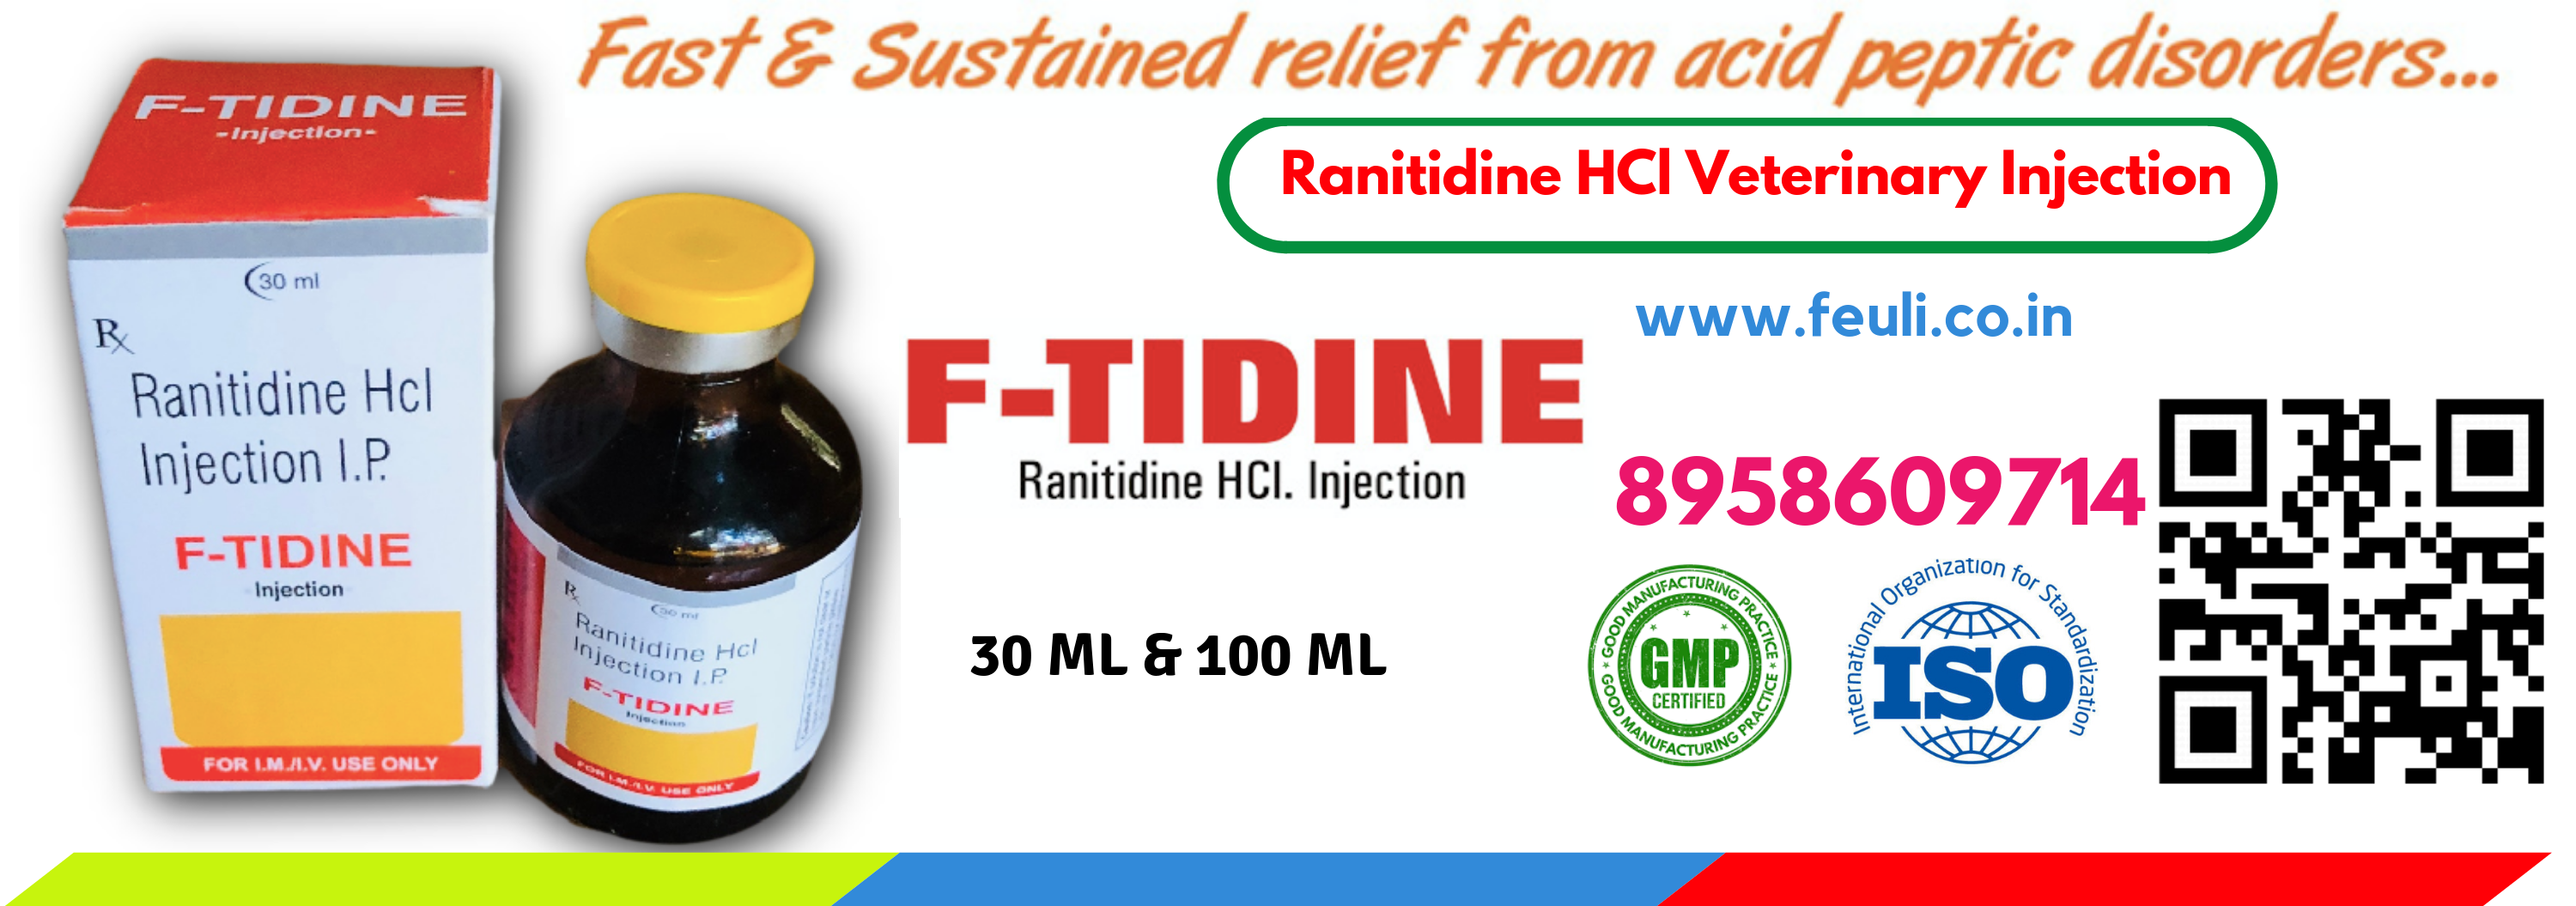 F-TIDINE Ranitidine Veterinary Injection